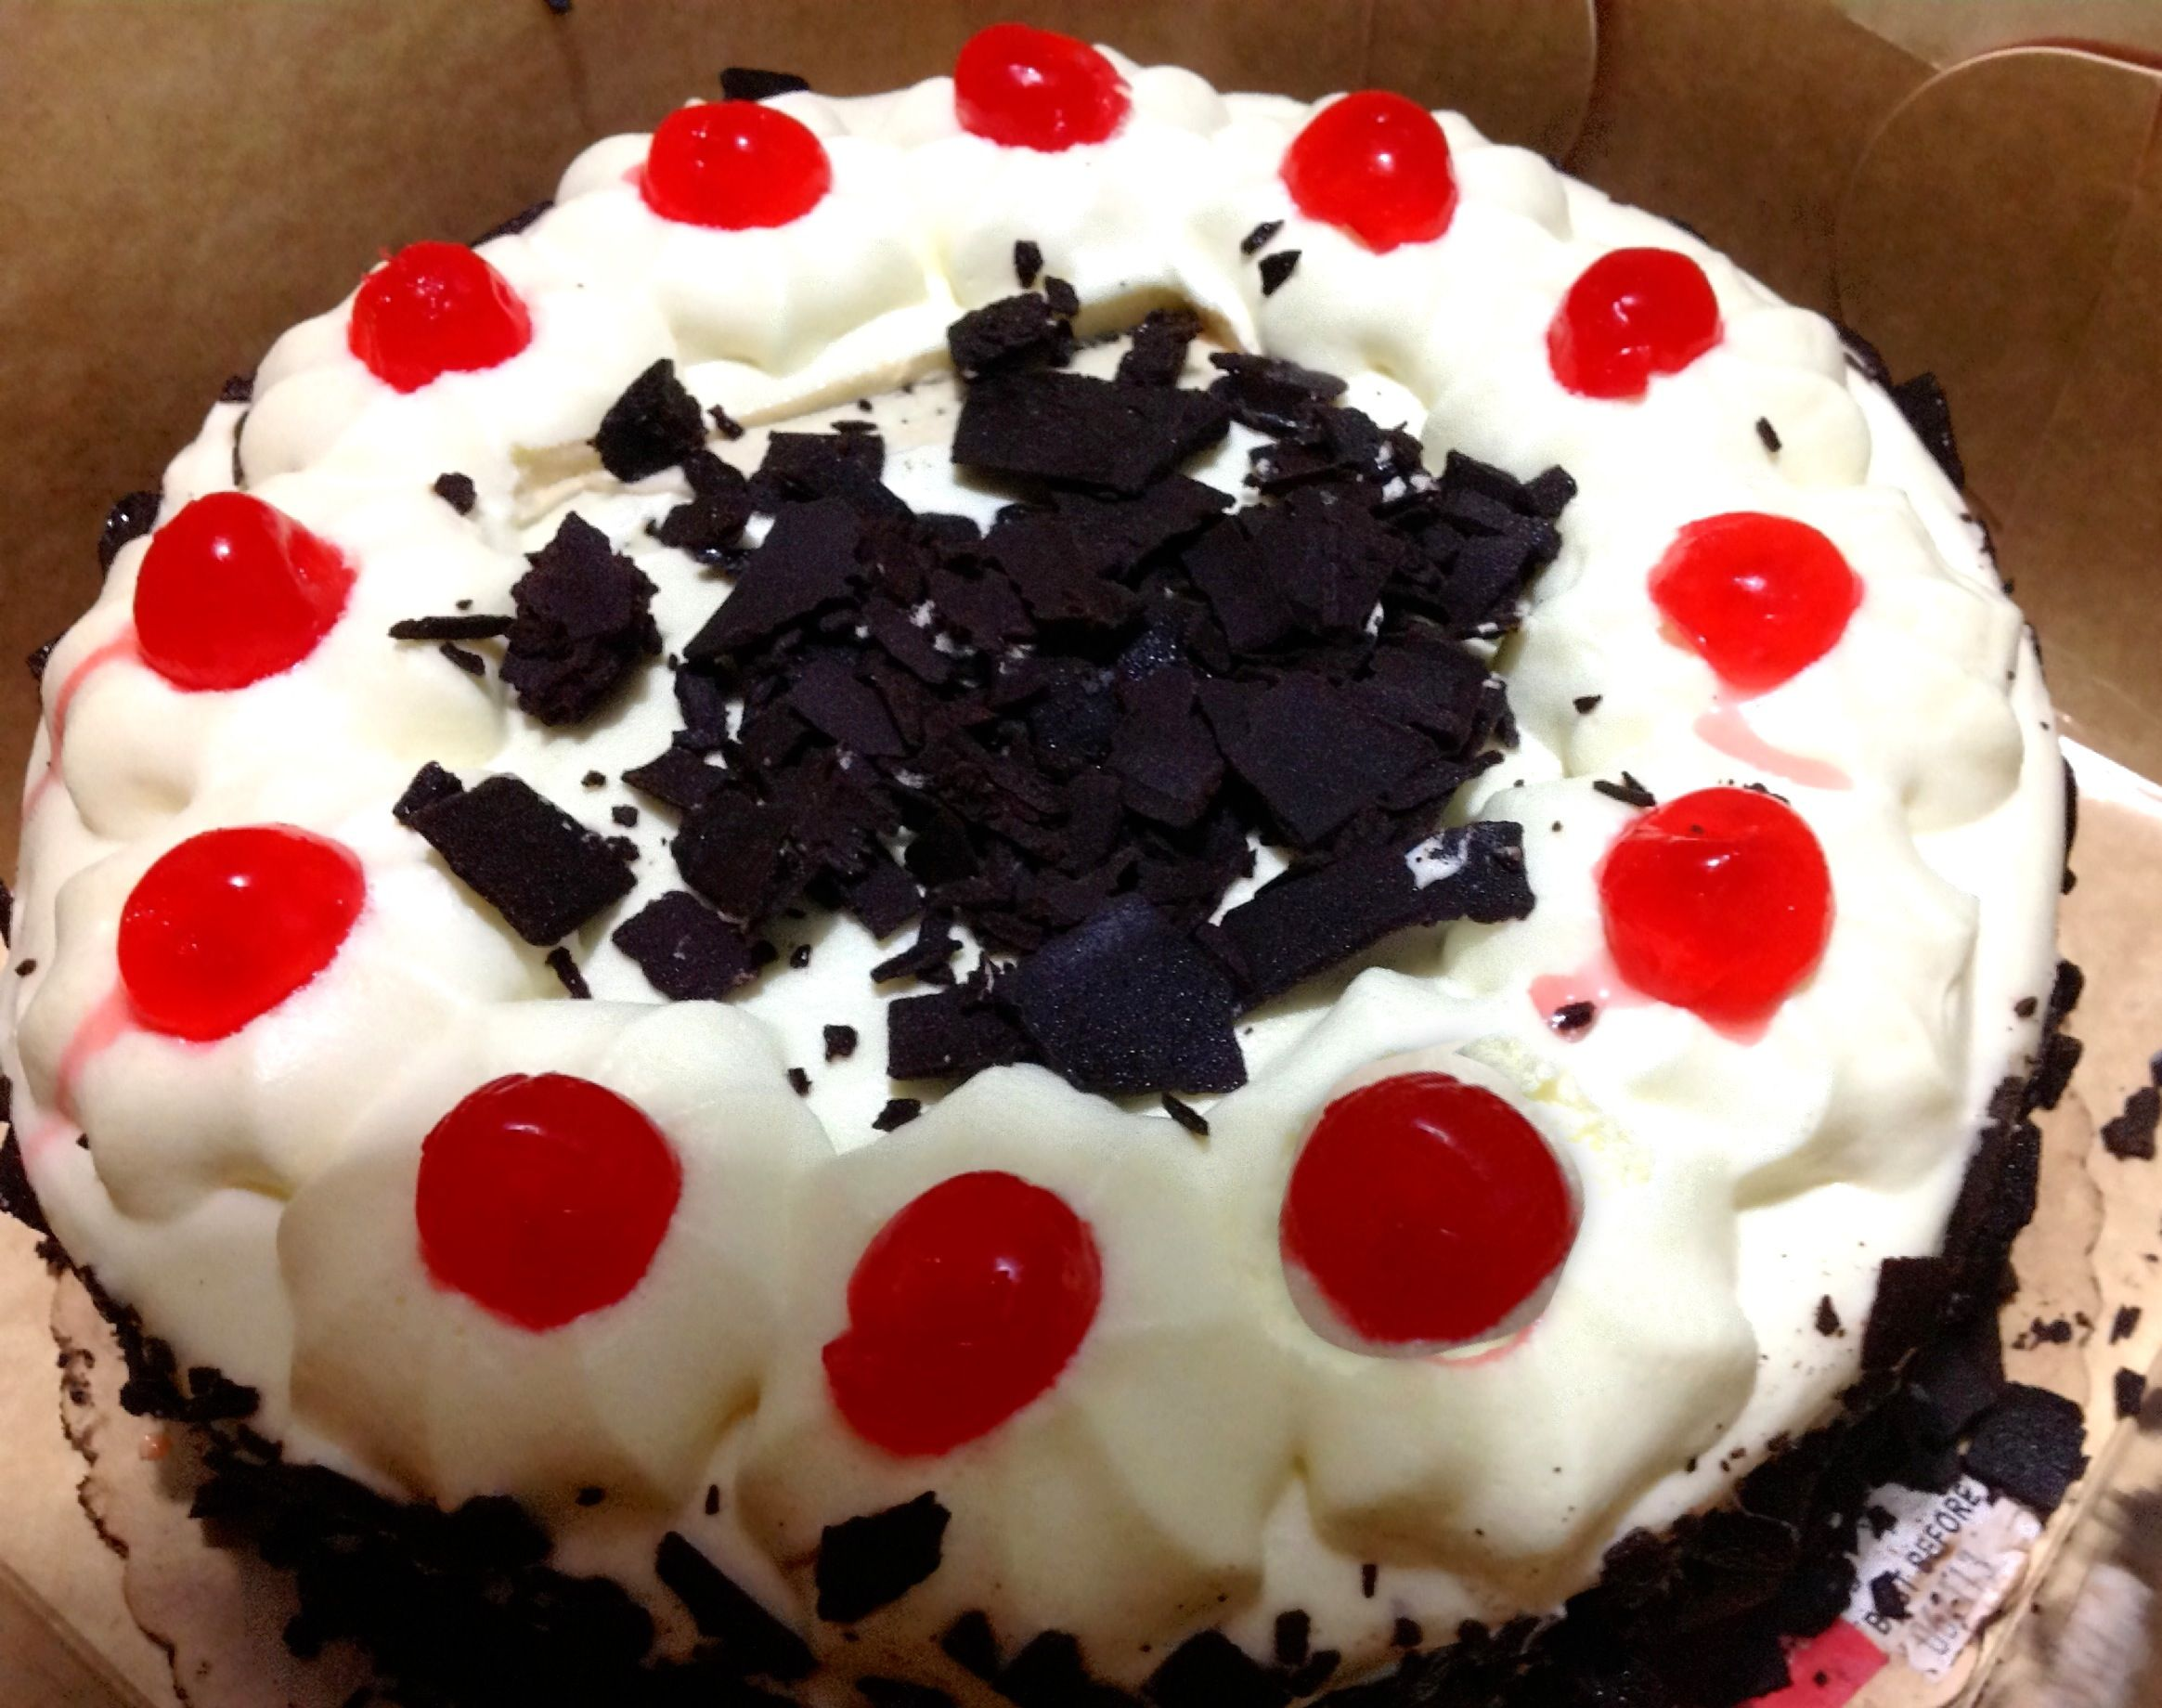 Black Forest Cake, Red Ribbon cake shop 06-17-13 ⭐⭐